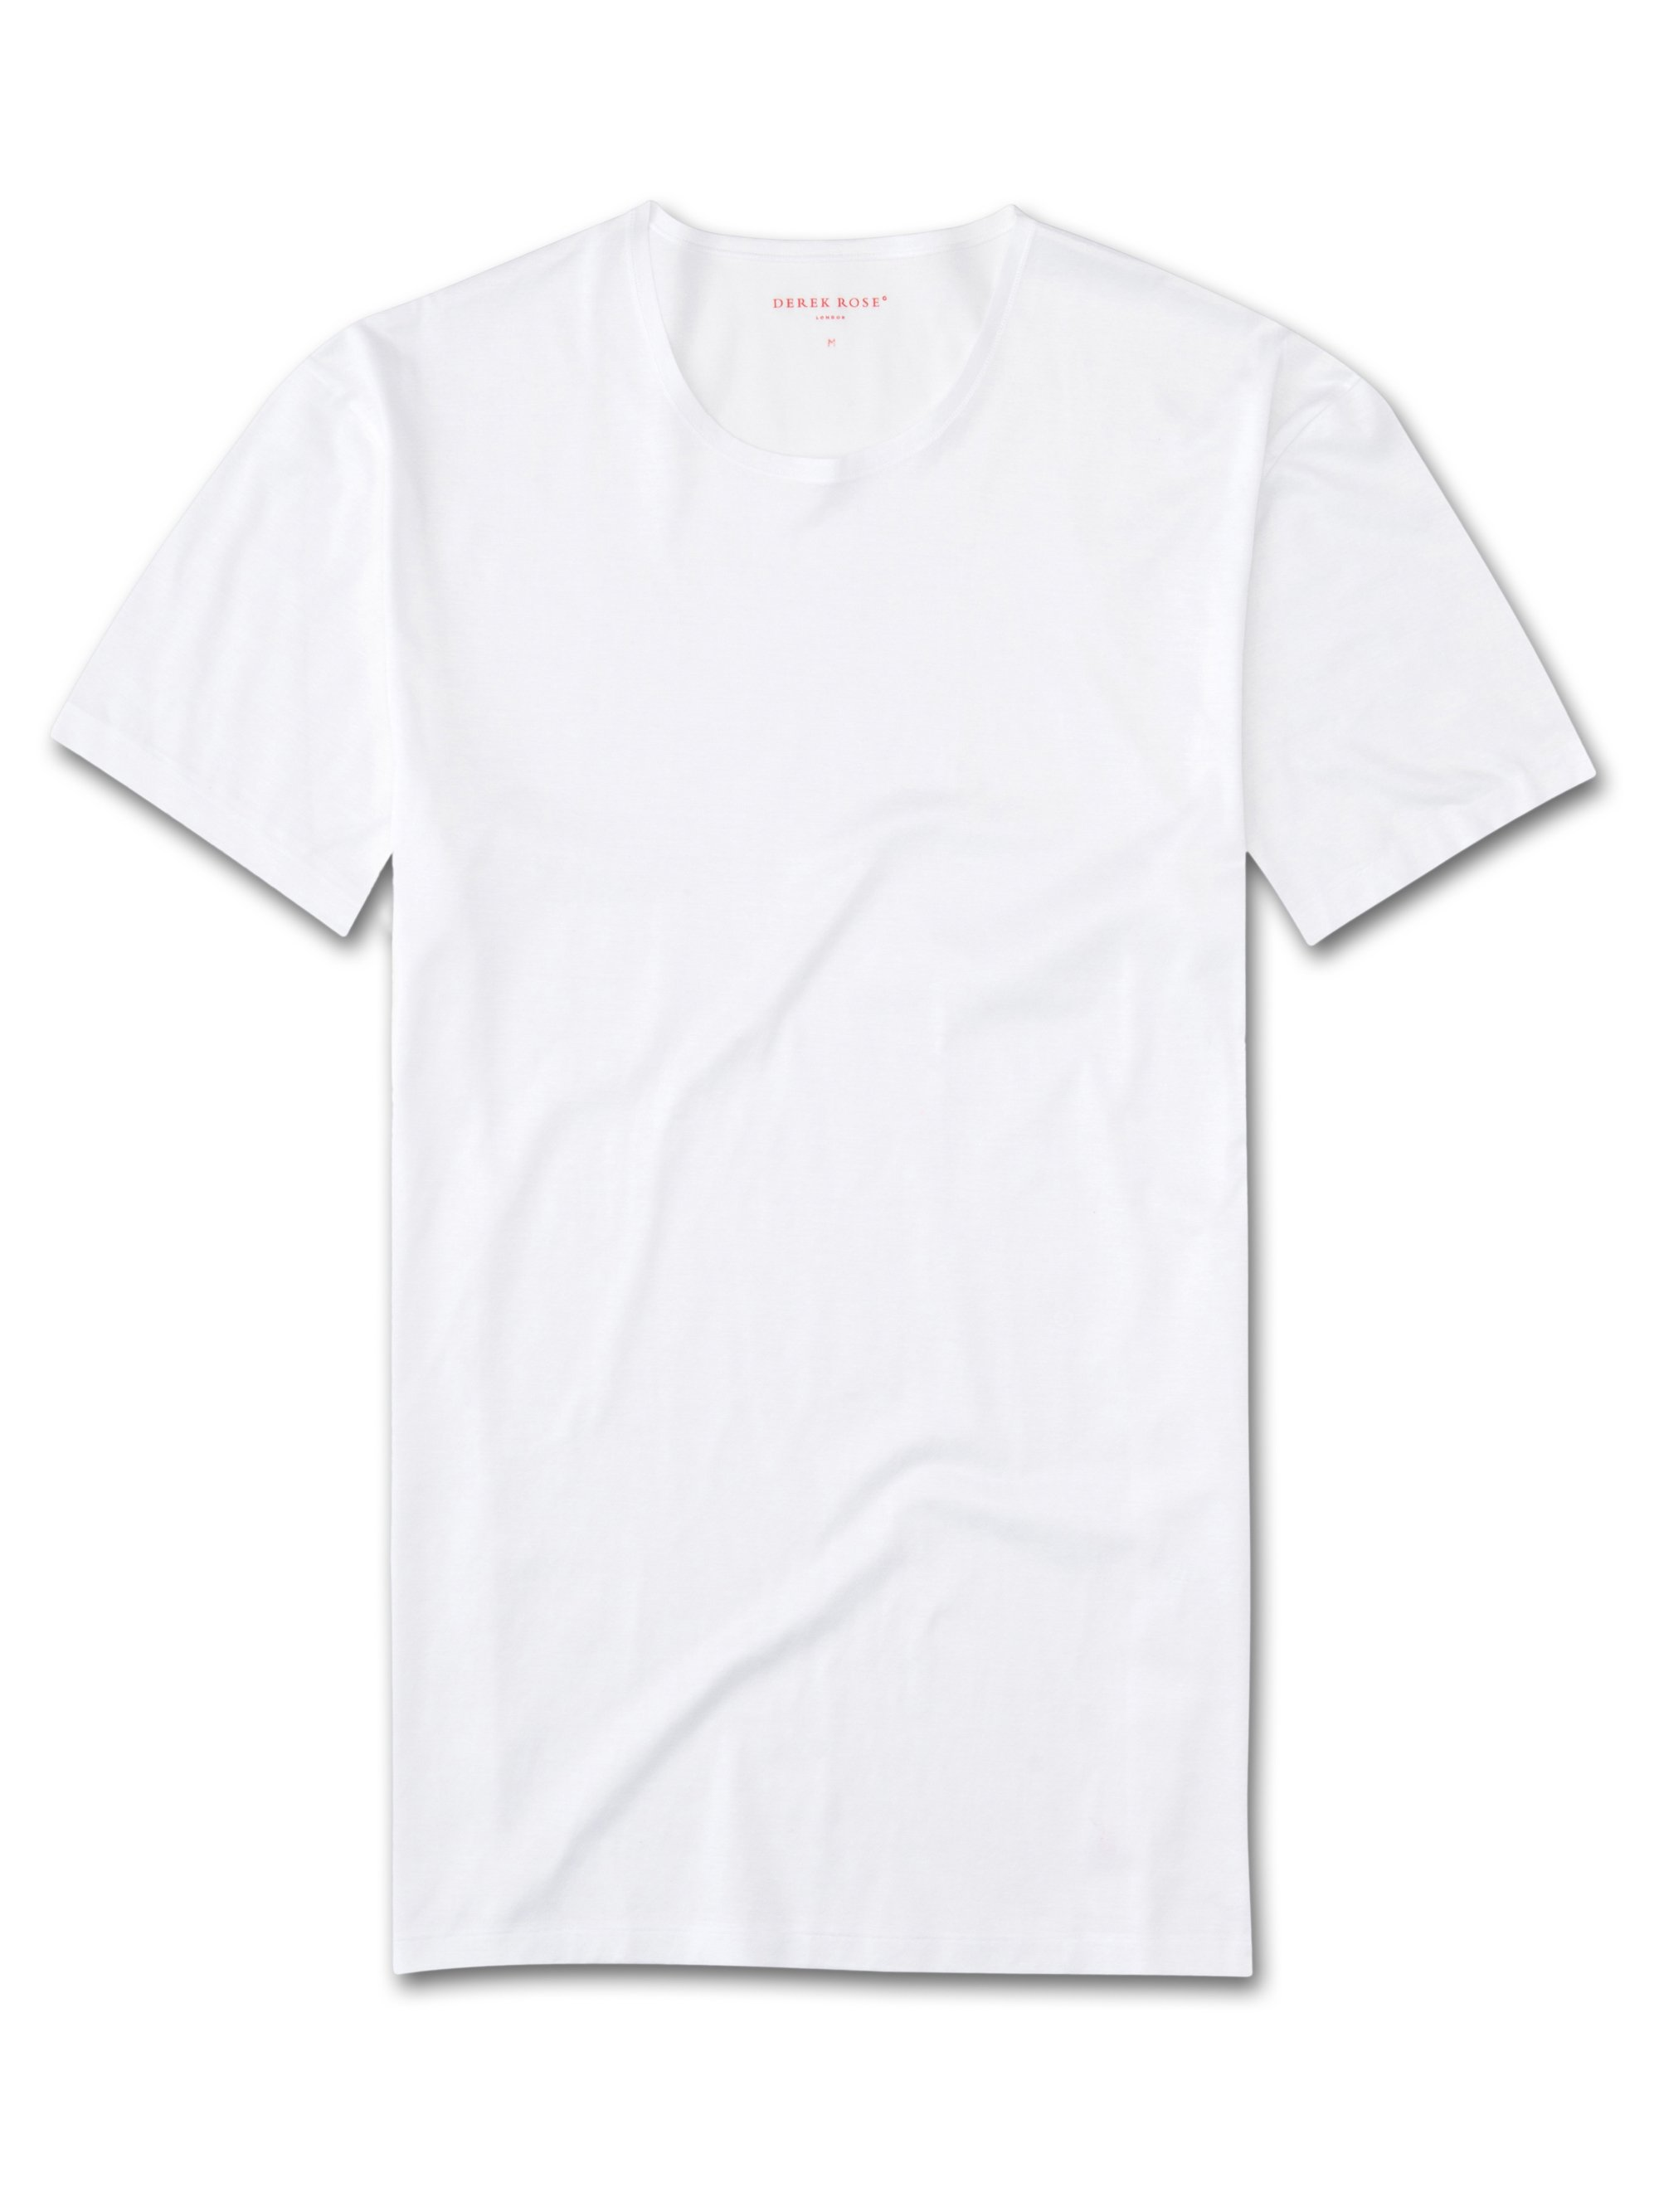 Men's Underwear Crew-Neck T-Shirt Lewis Double Mercerised Cotton White